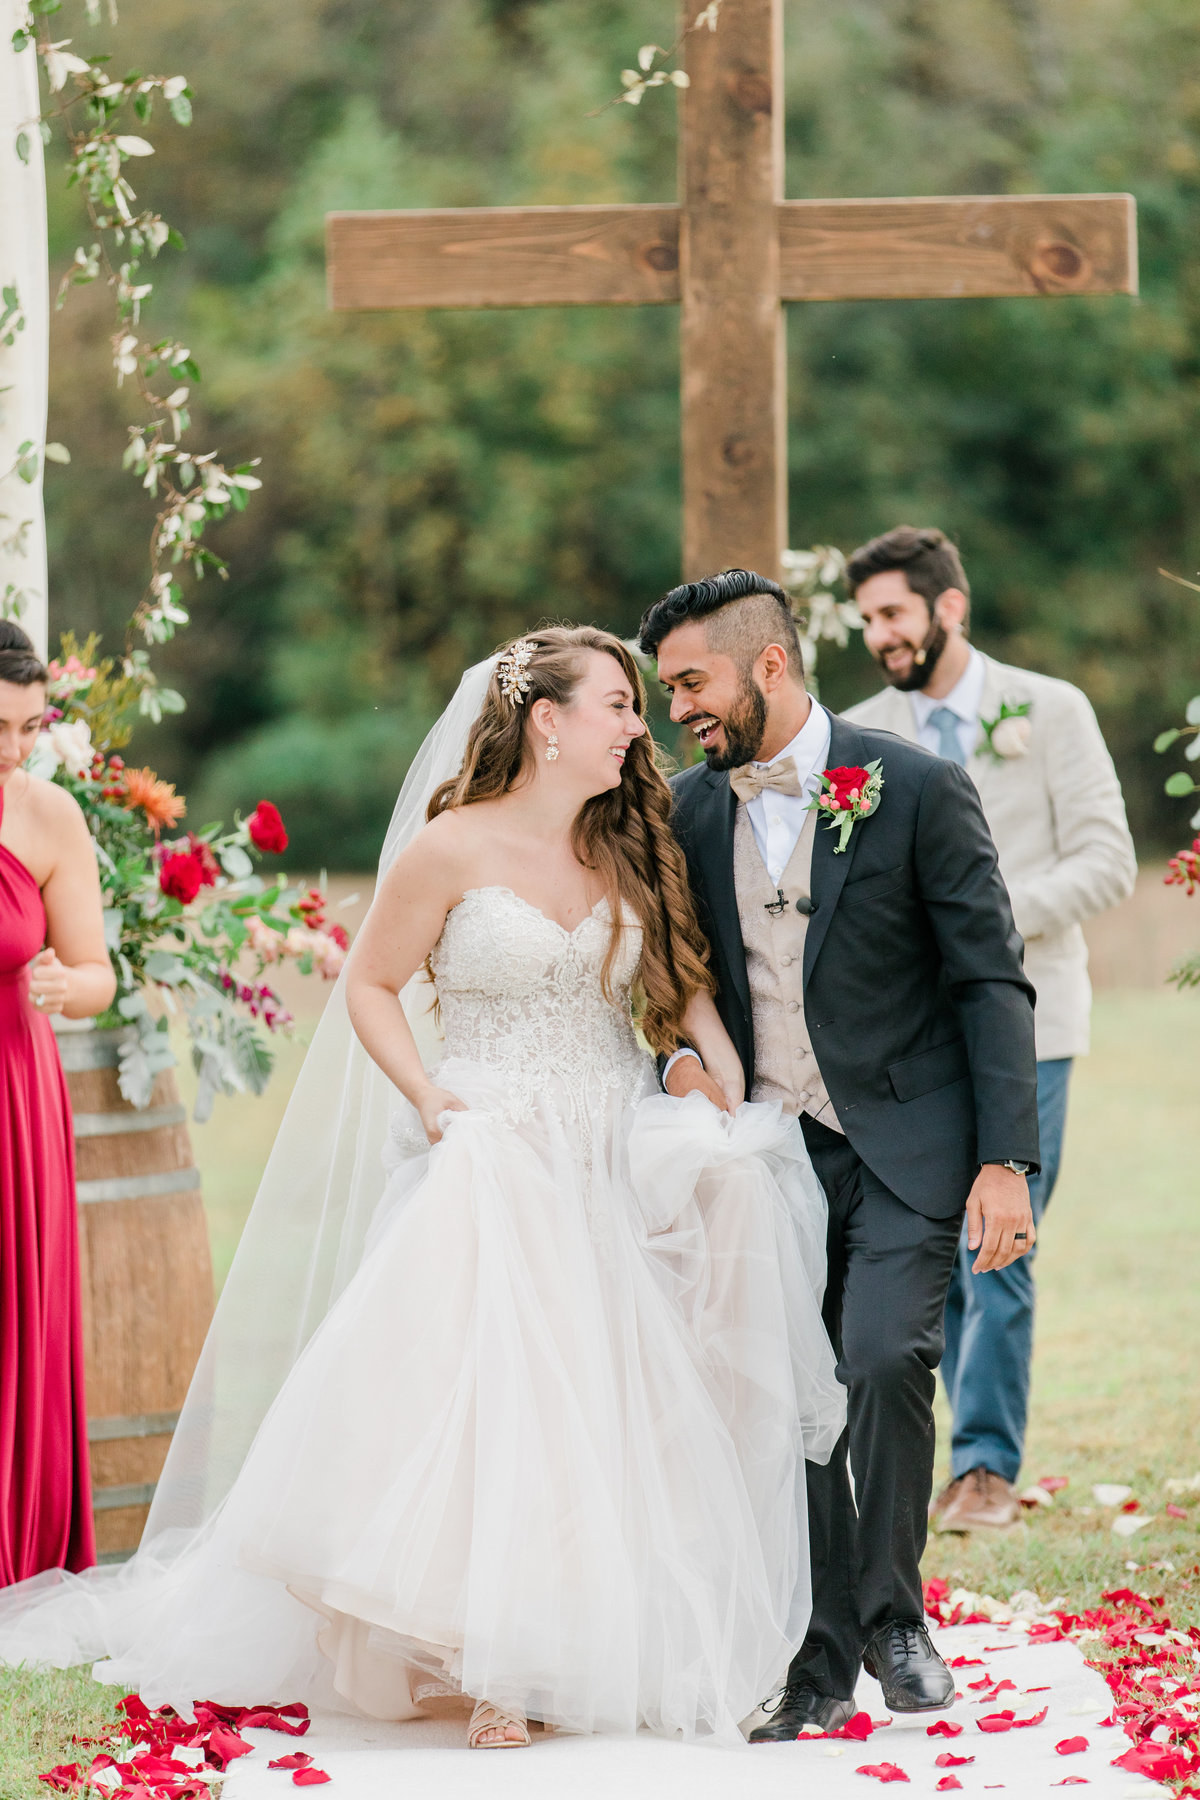 Williamsburg_Winery_Fall_Wedding_Virginia_DC_Photographer_Angelika_Johns_Photography-9884